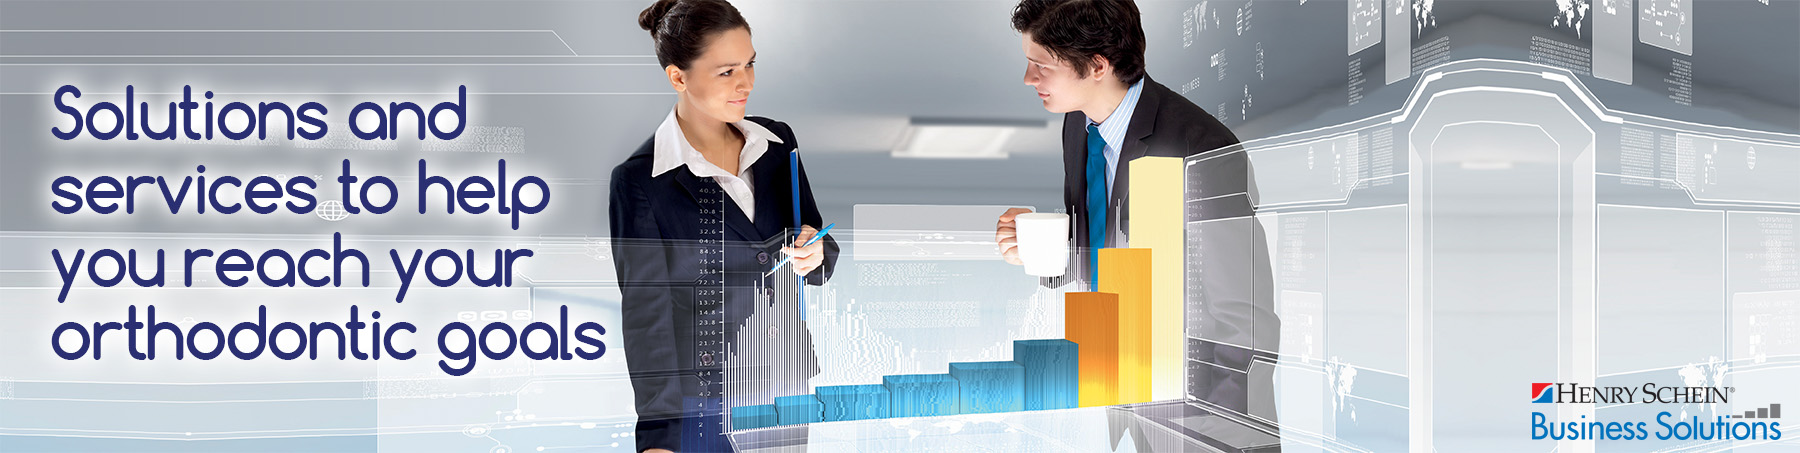 Find solutions and services to help you reach your goals with Henry Schein Business solutions.